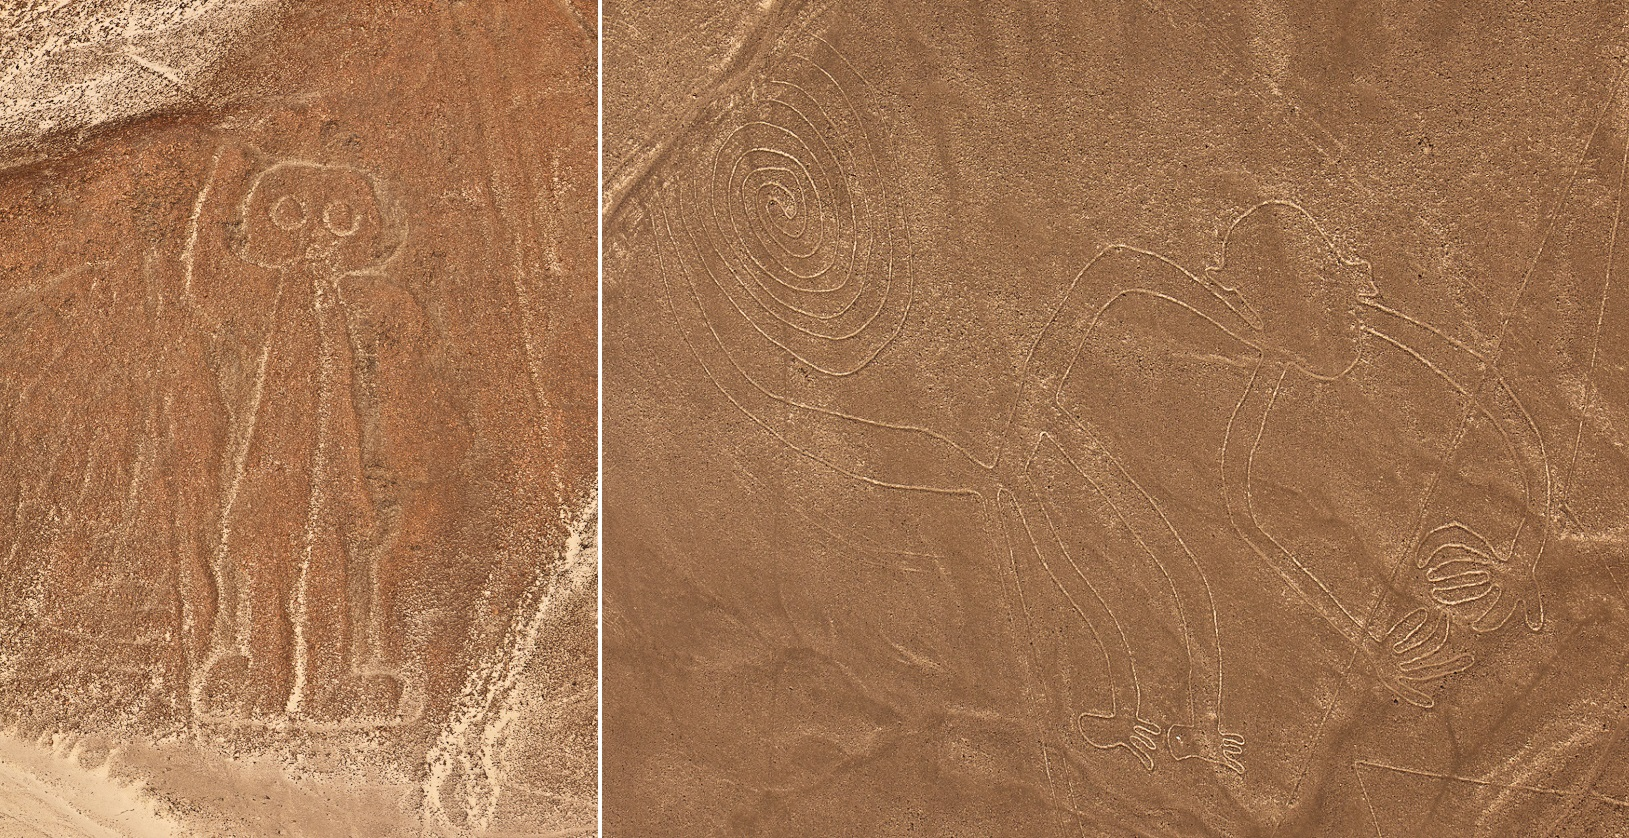 Nazca Lines: The Astronaut and the Monkey